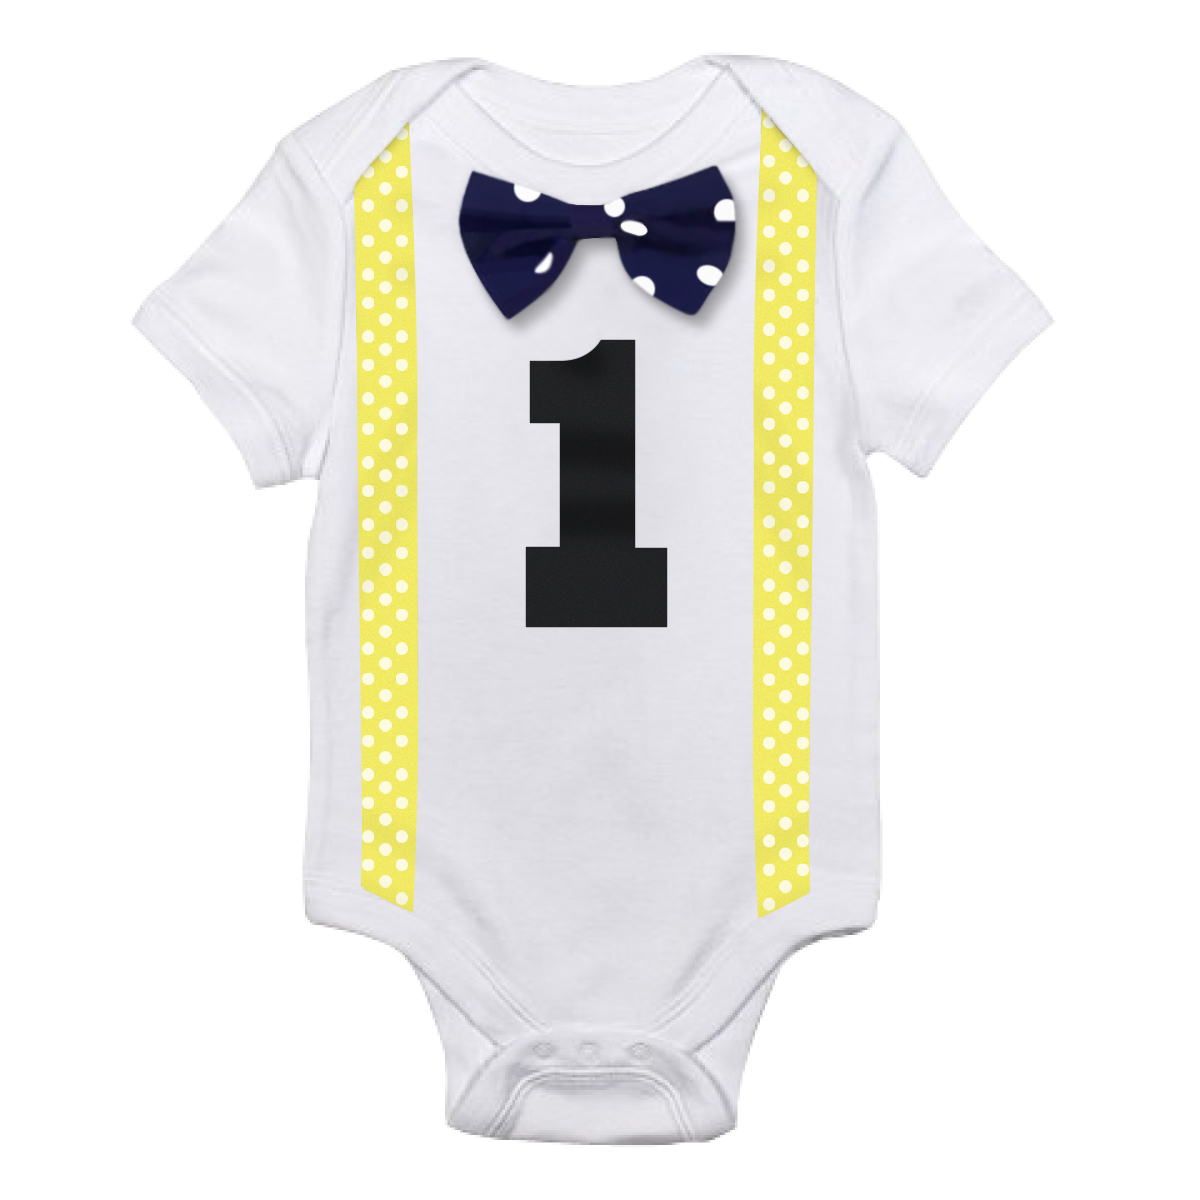 Fantasia Baby Infant Bow Jumpsuit Overall Short Sleeve Body Suit Baby Clothing Set Summer Cotton Romper For 1 Year Boy Girl